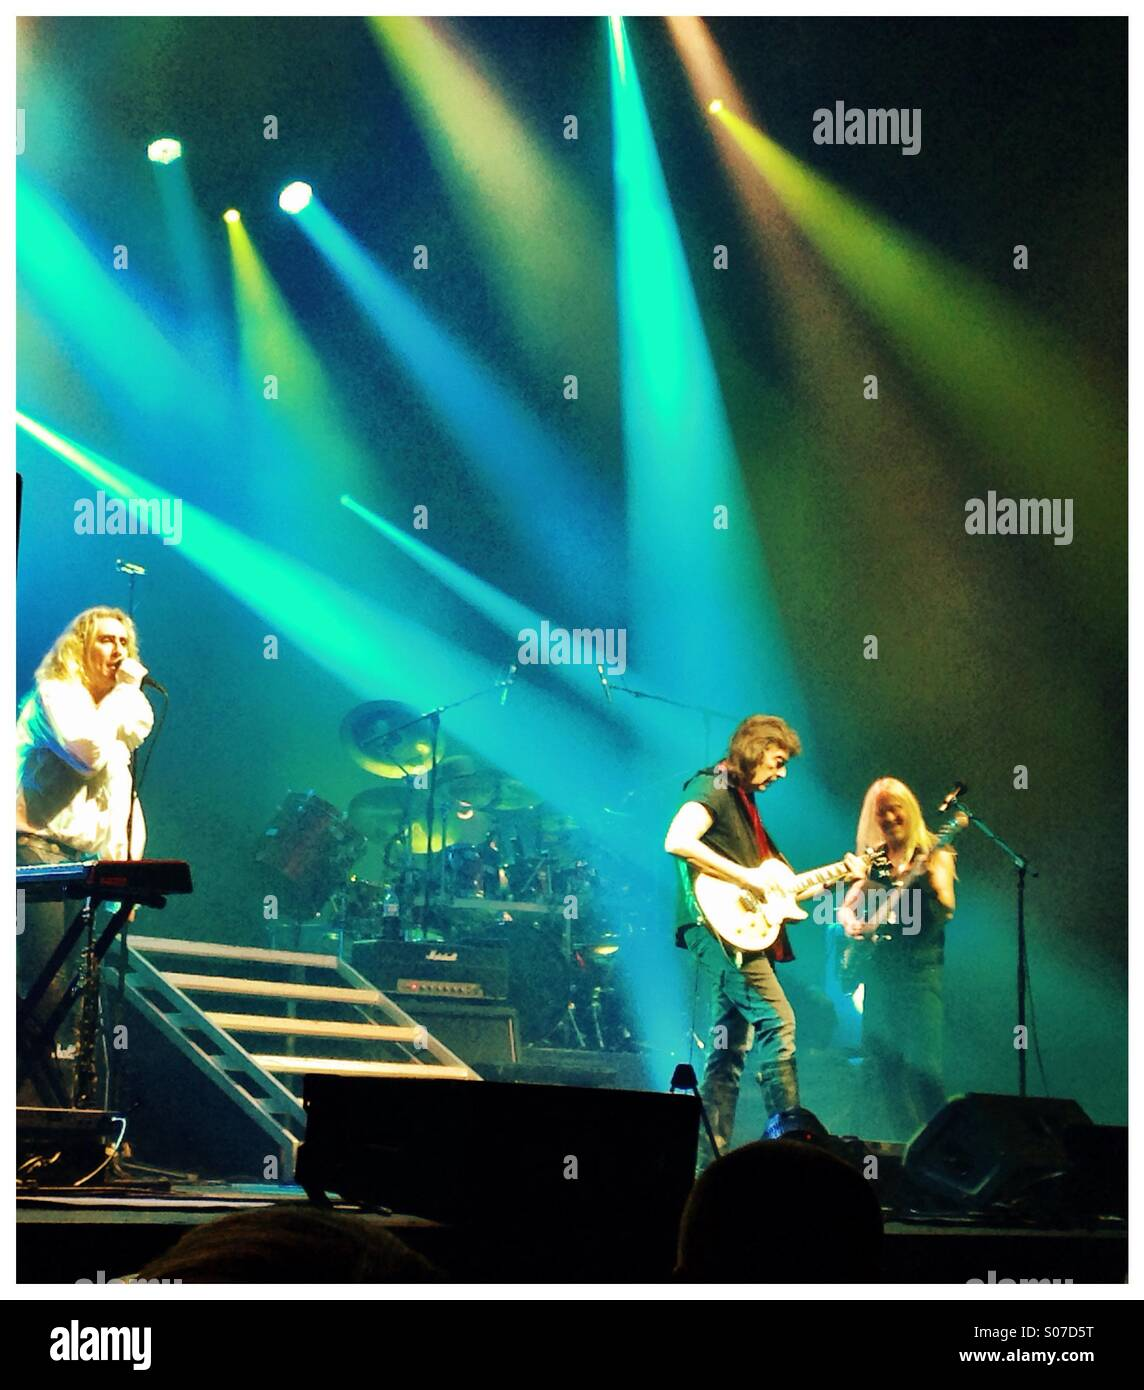 Steve Hackett and band - Stock Image